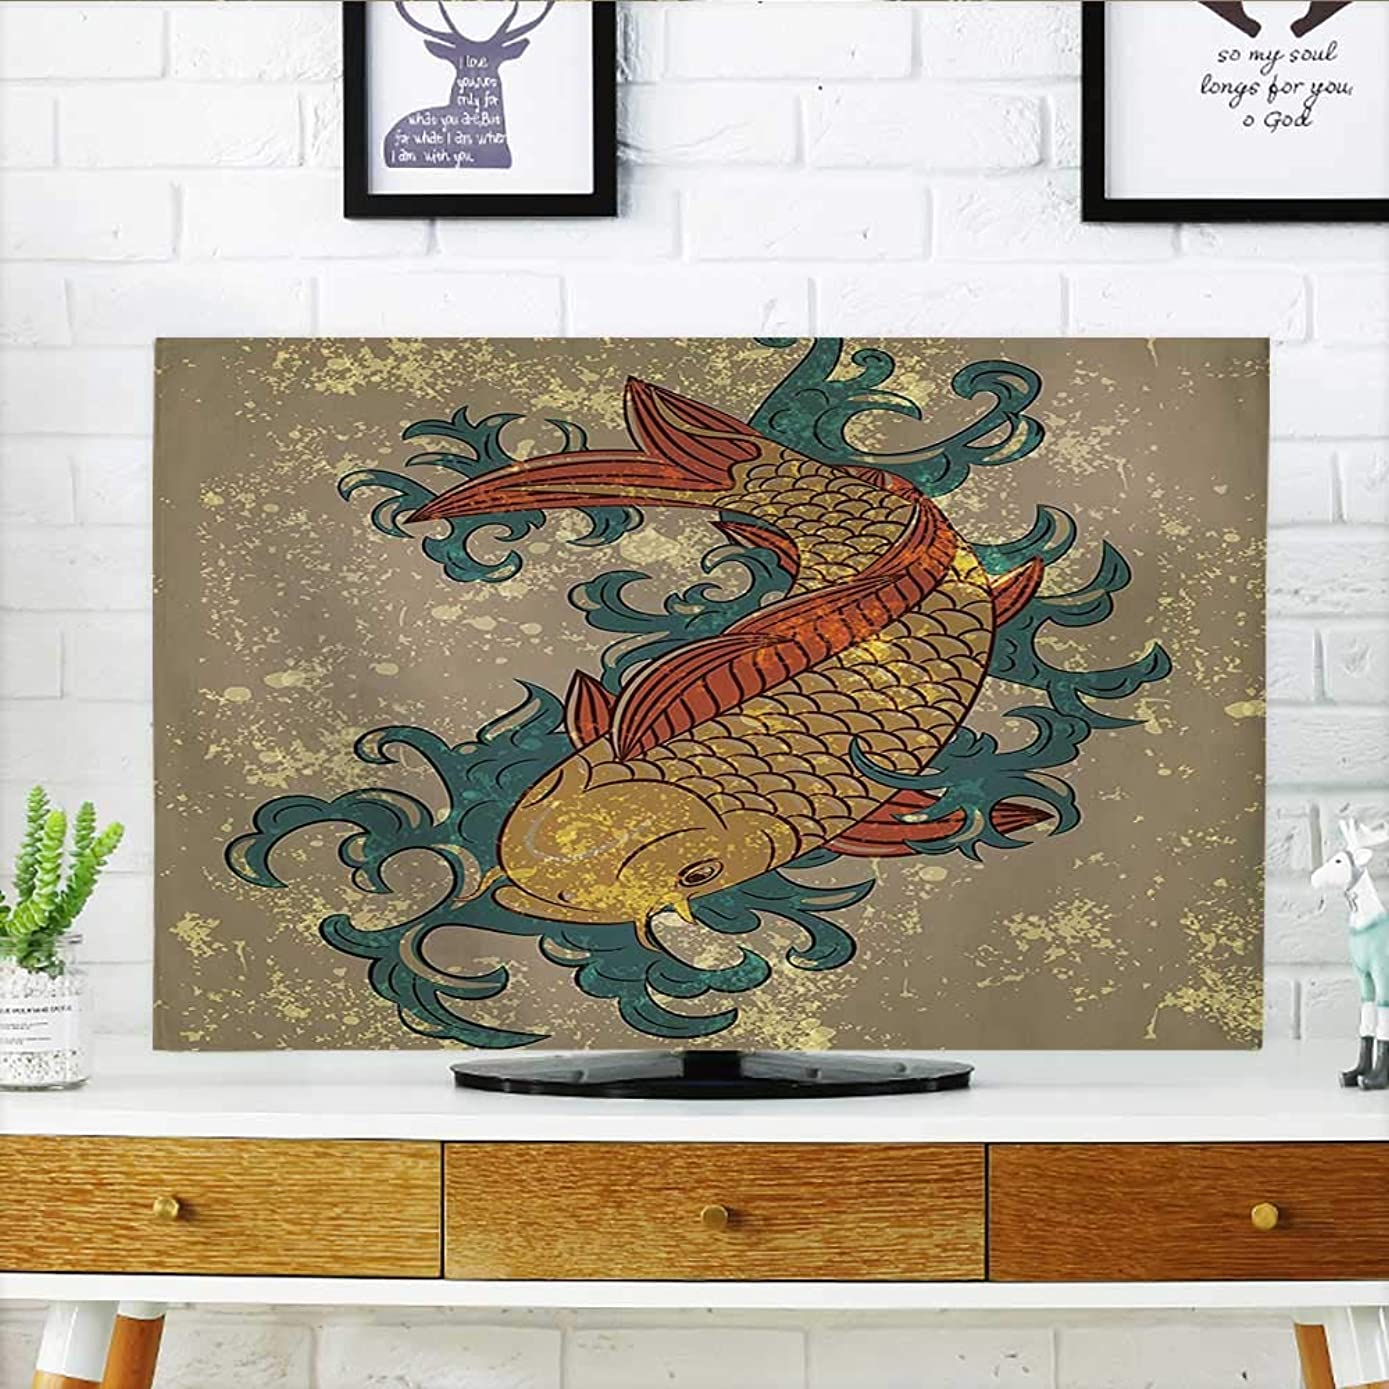 Cord Cover for Wall Mounted tv Grunge Asian Style Oriental Cold Water Koi Carp Fish Aquatic Theme on Distressed Cover Mounted tv W20 x H40 INCH/TV 40